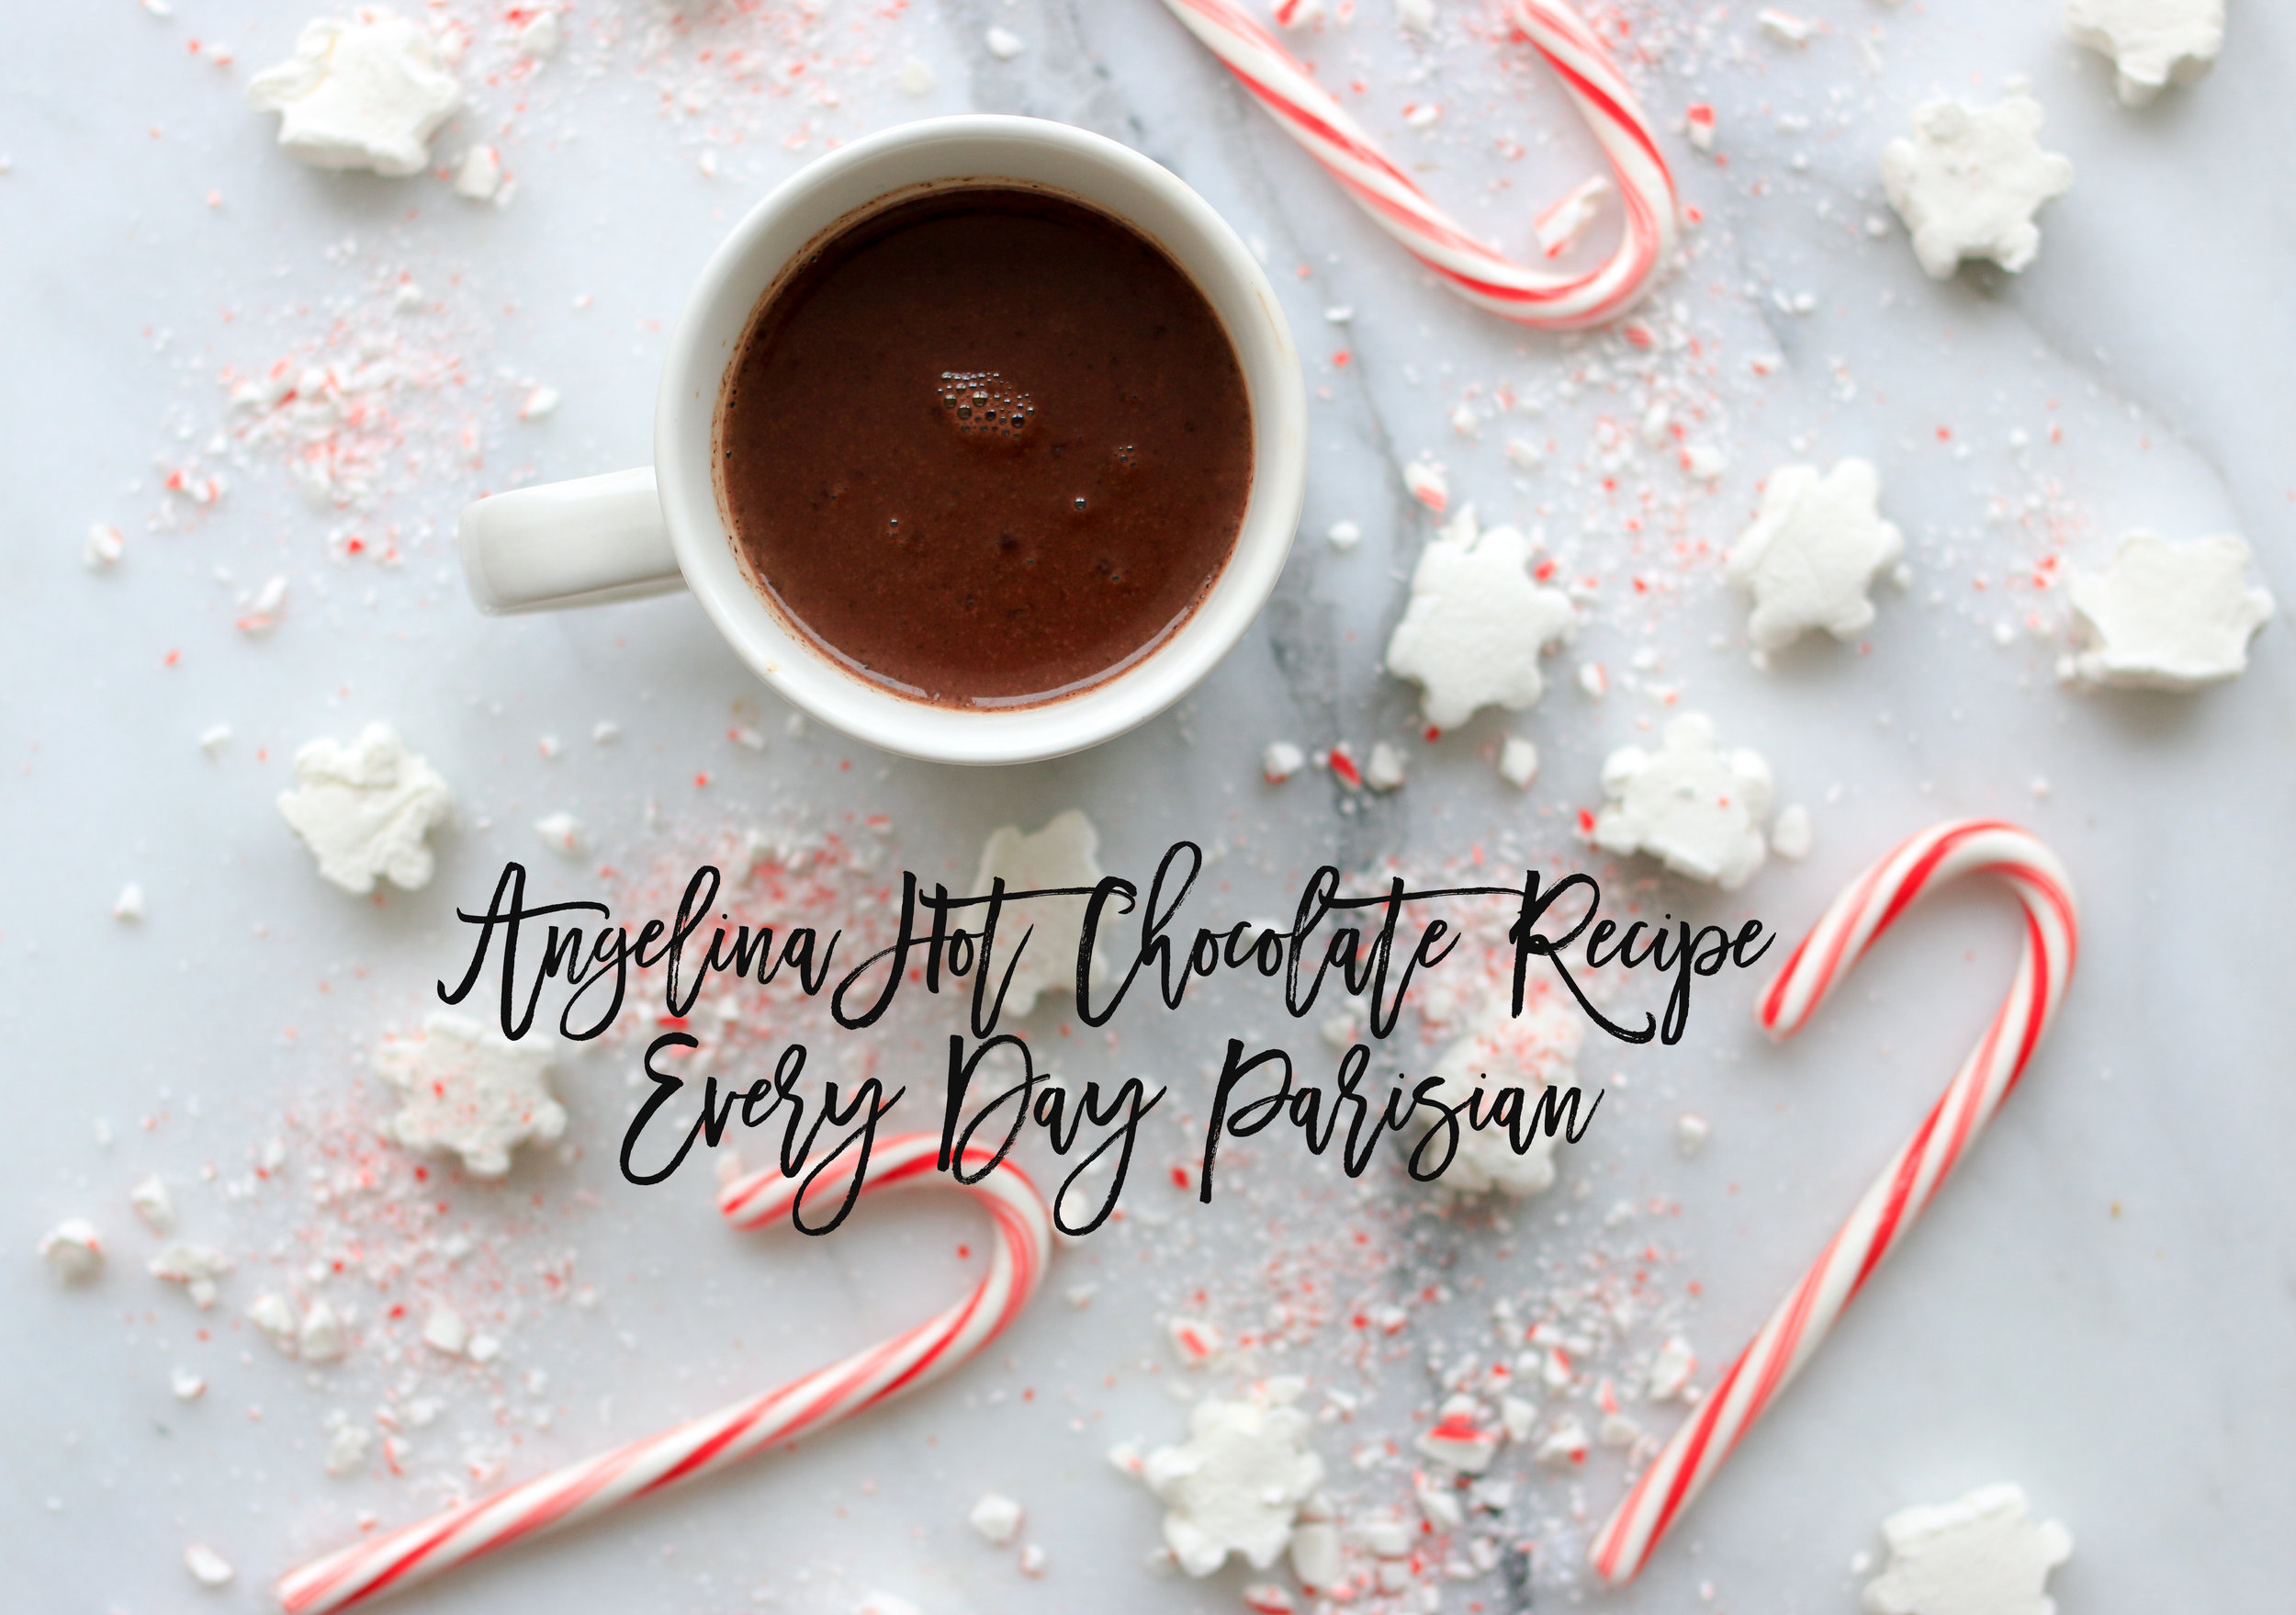 angelina hot chocolate recipe @rebeccaplotnick